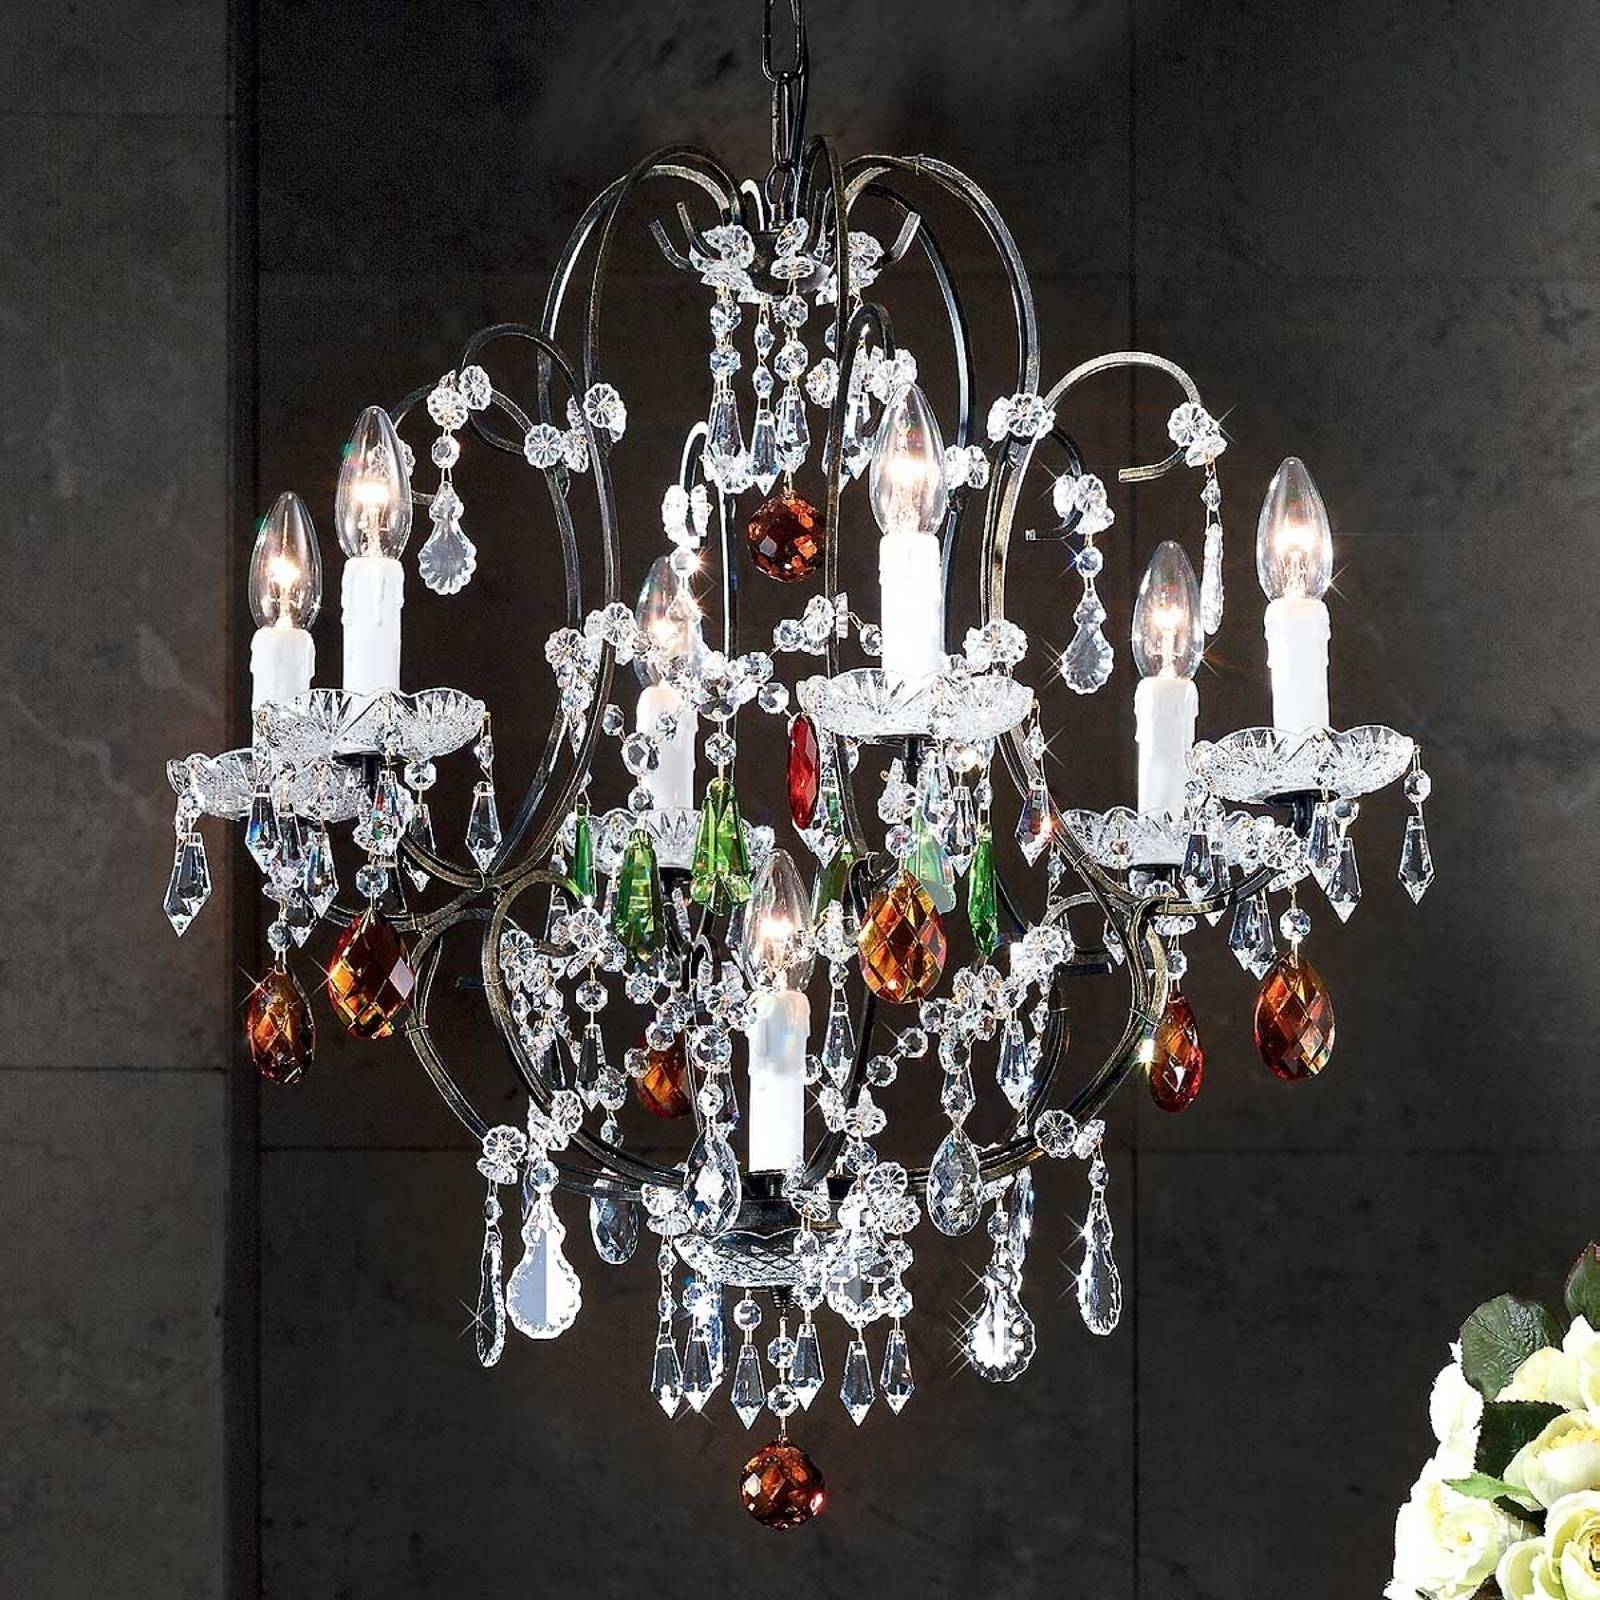 Eliara Chandelier Venetian Style from Orion